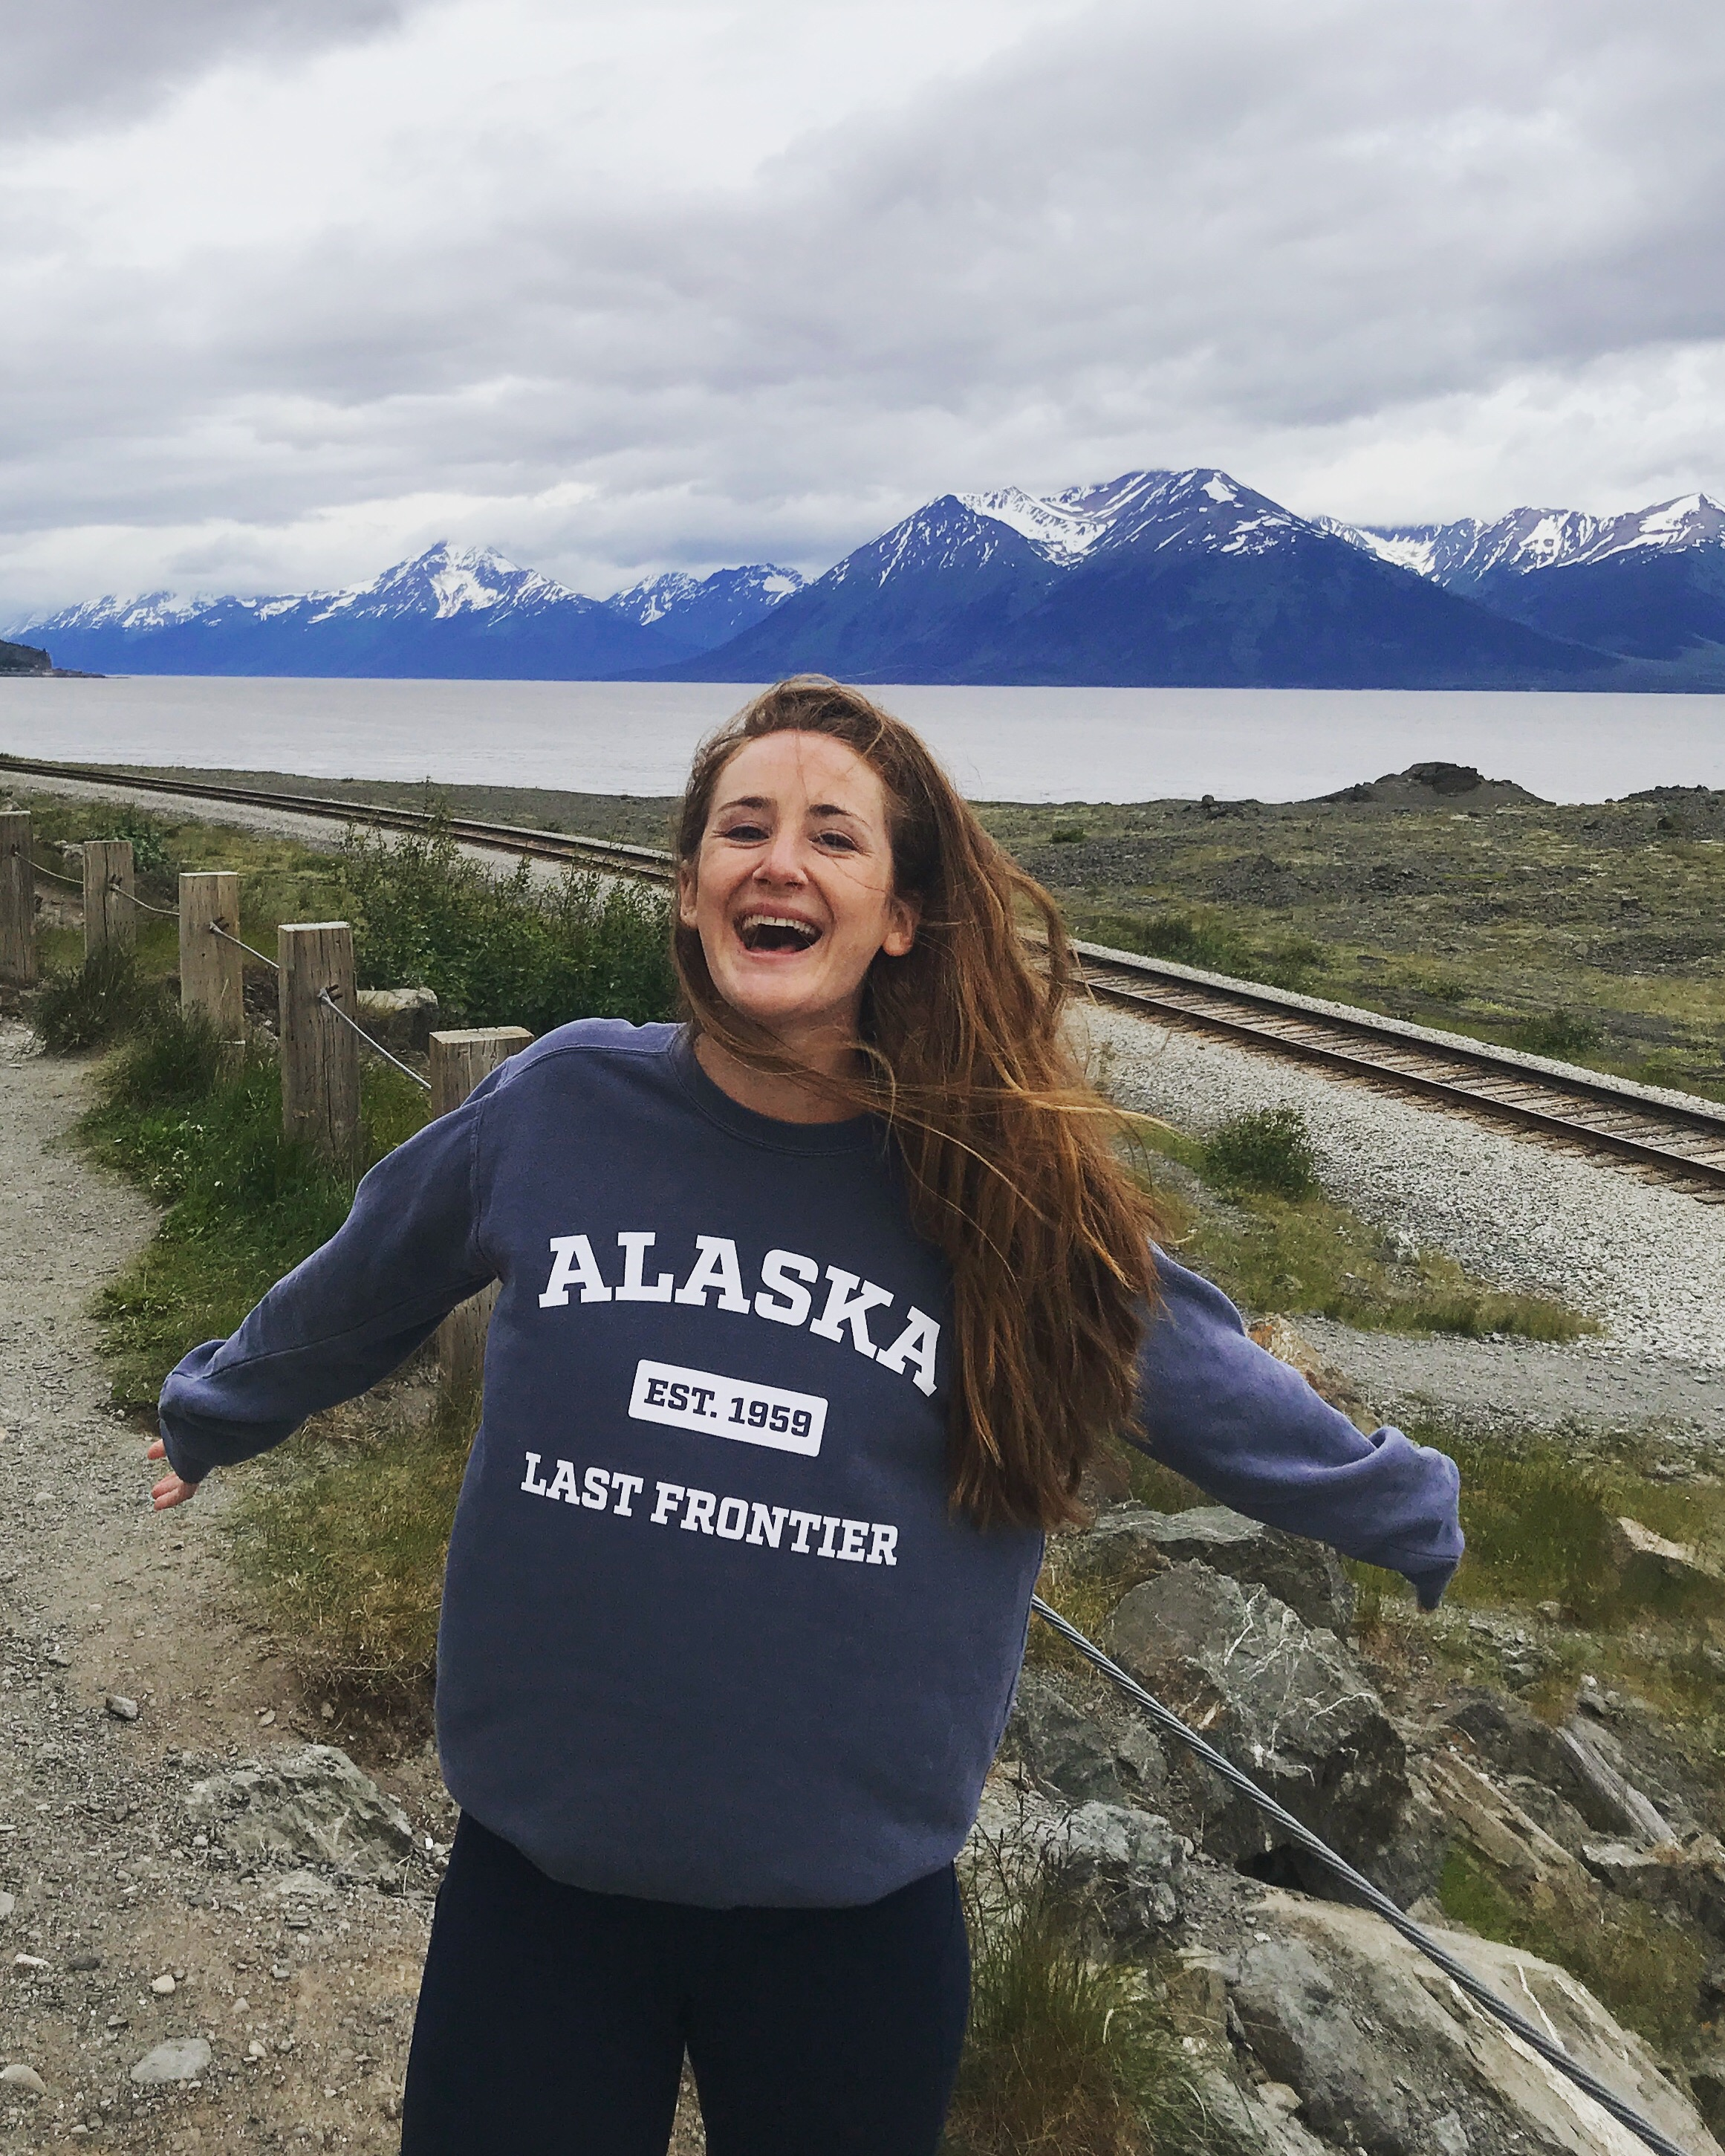 The final state in the American Happiness speaking tour, Alaska!!